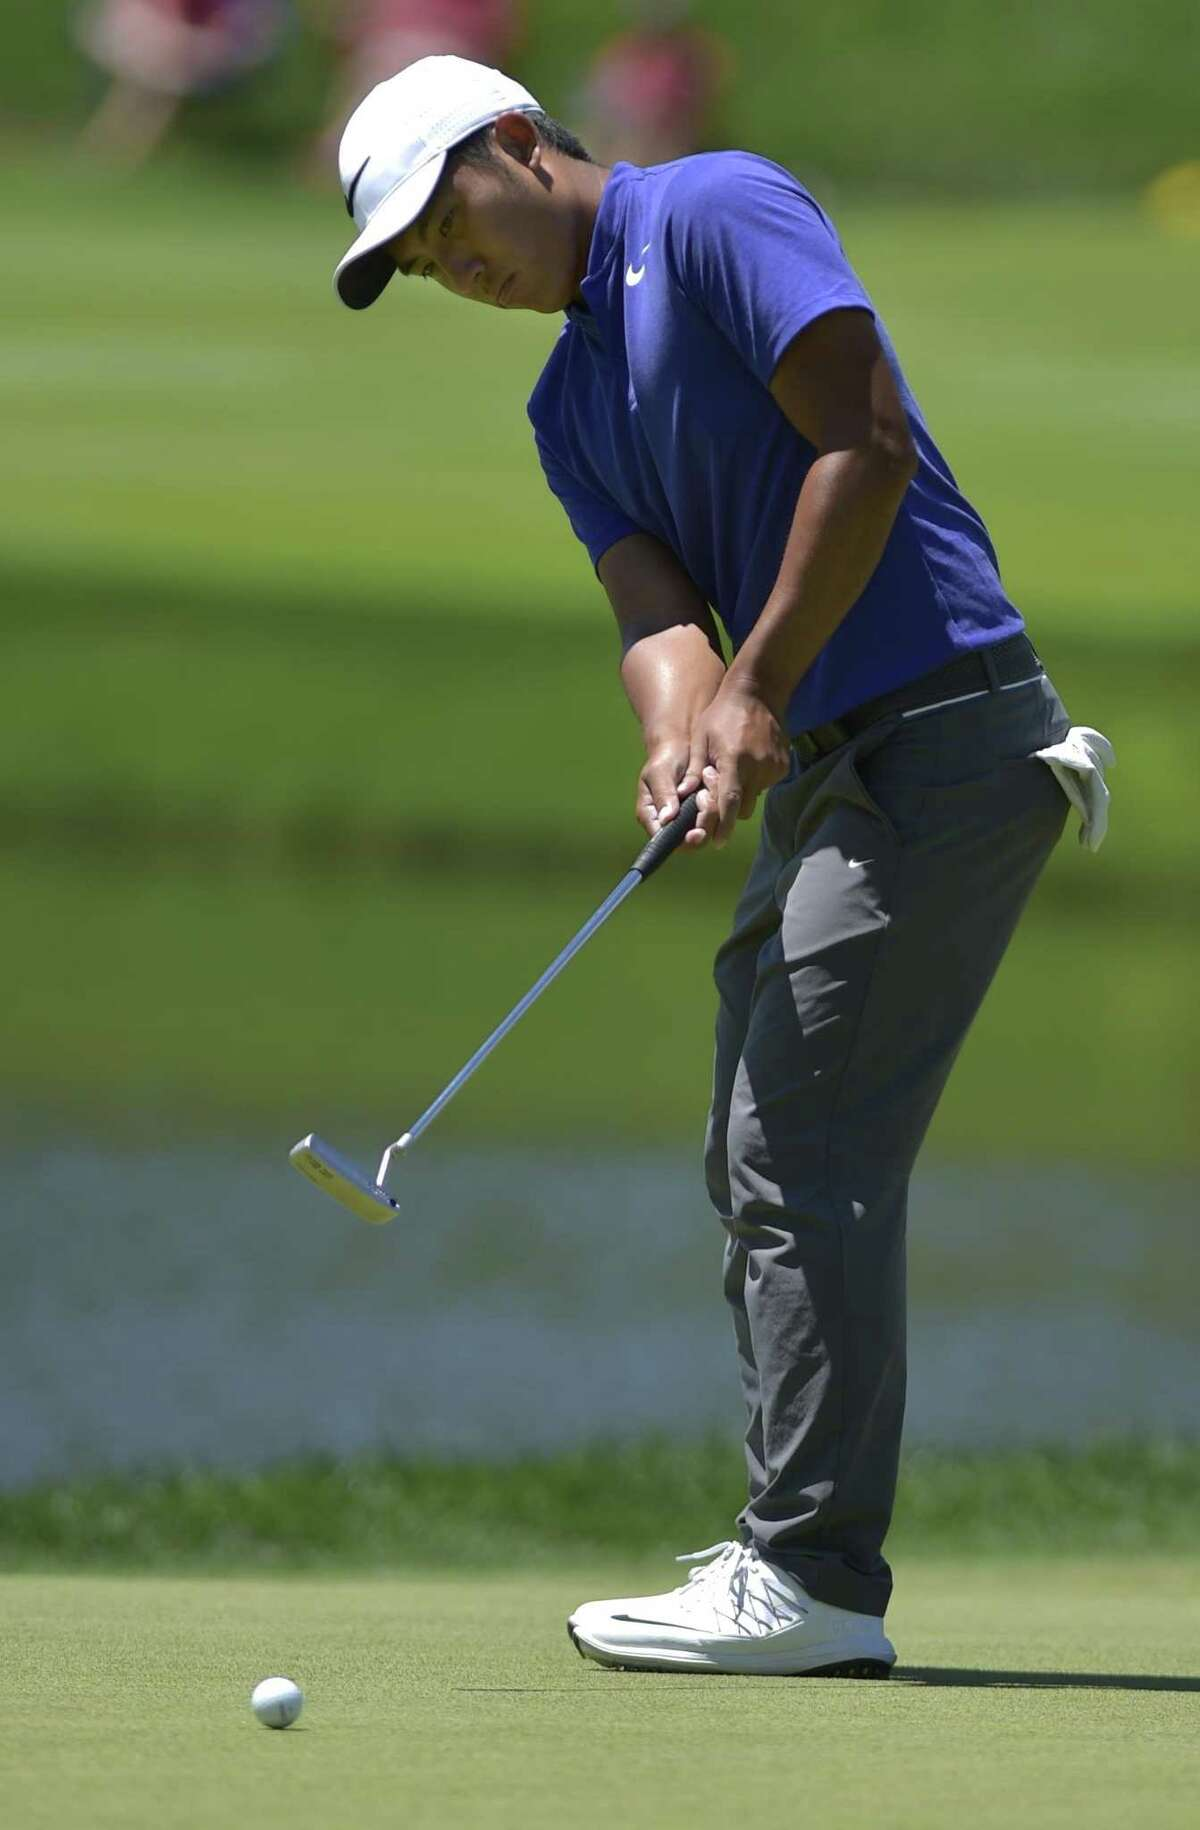 C.T. Pan putts on the 17th green during the third round of the Travelers Championship golf tournament at TPC River Highlands on Saturday, June 24, 2017, in Cromwell, Conn. (Brad Horrigan/Hartford Courant via AP)